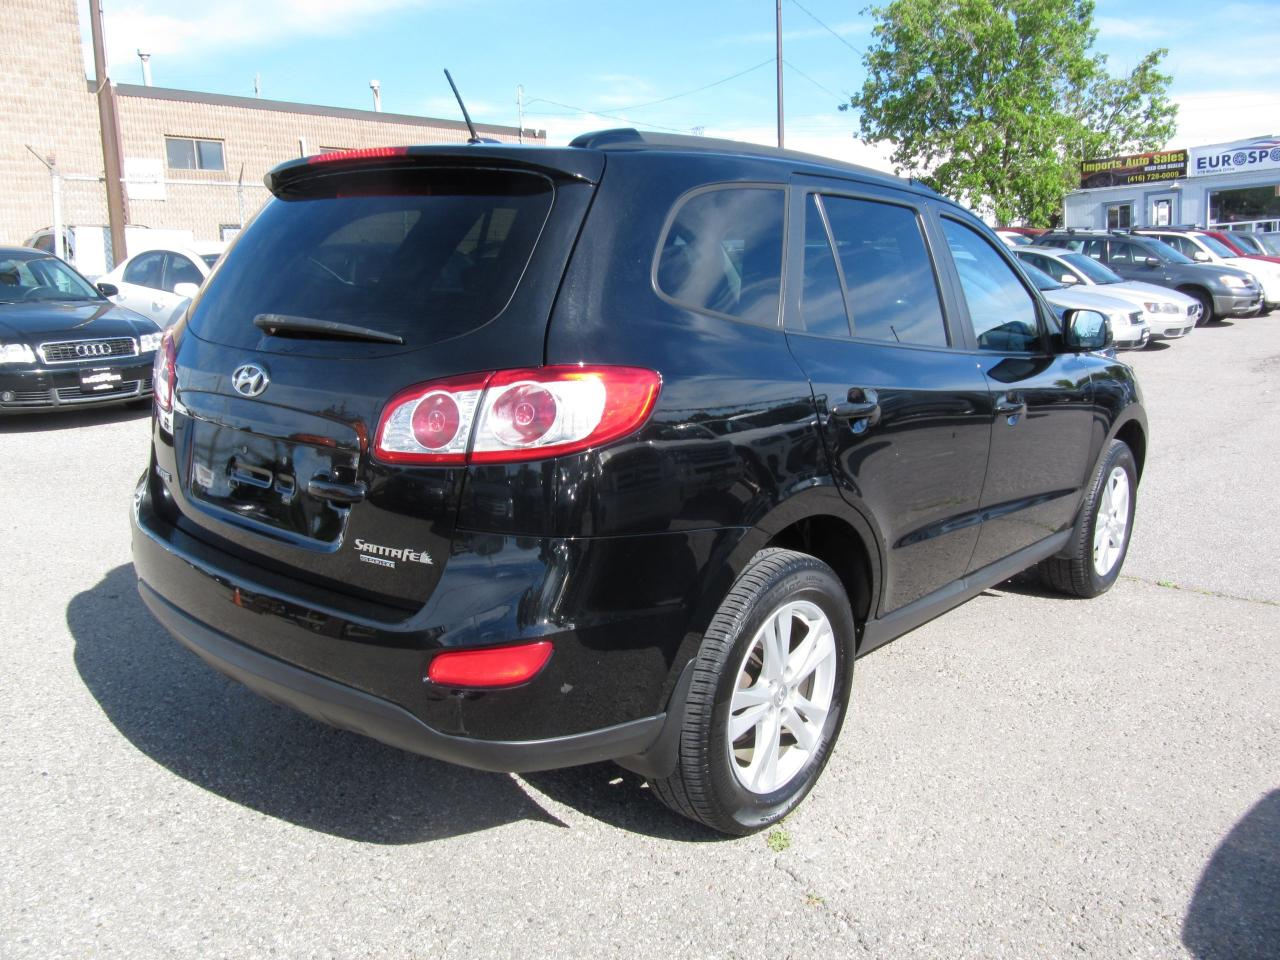 used 2010 hyundai santa fe gl w sport leather seats for sale in newmarket ontario. Black Bedroom Furniture Sets. Home Design Ideas